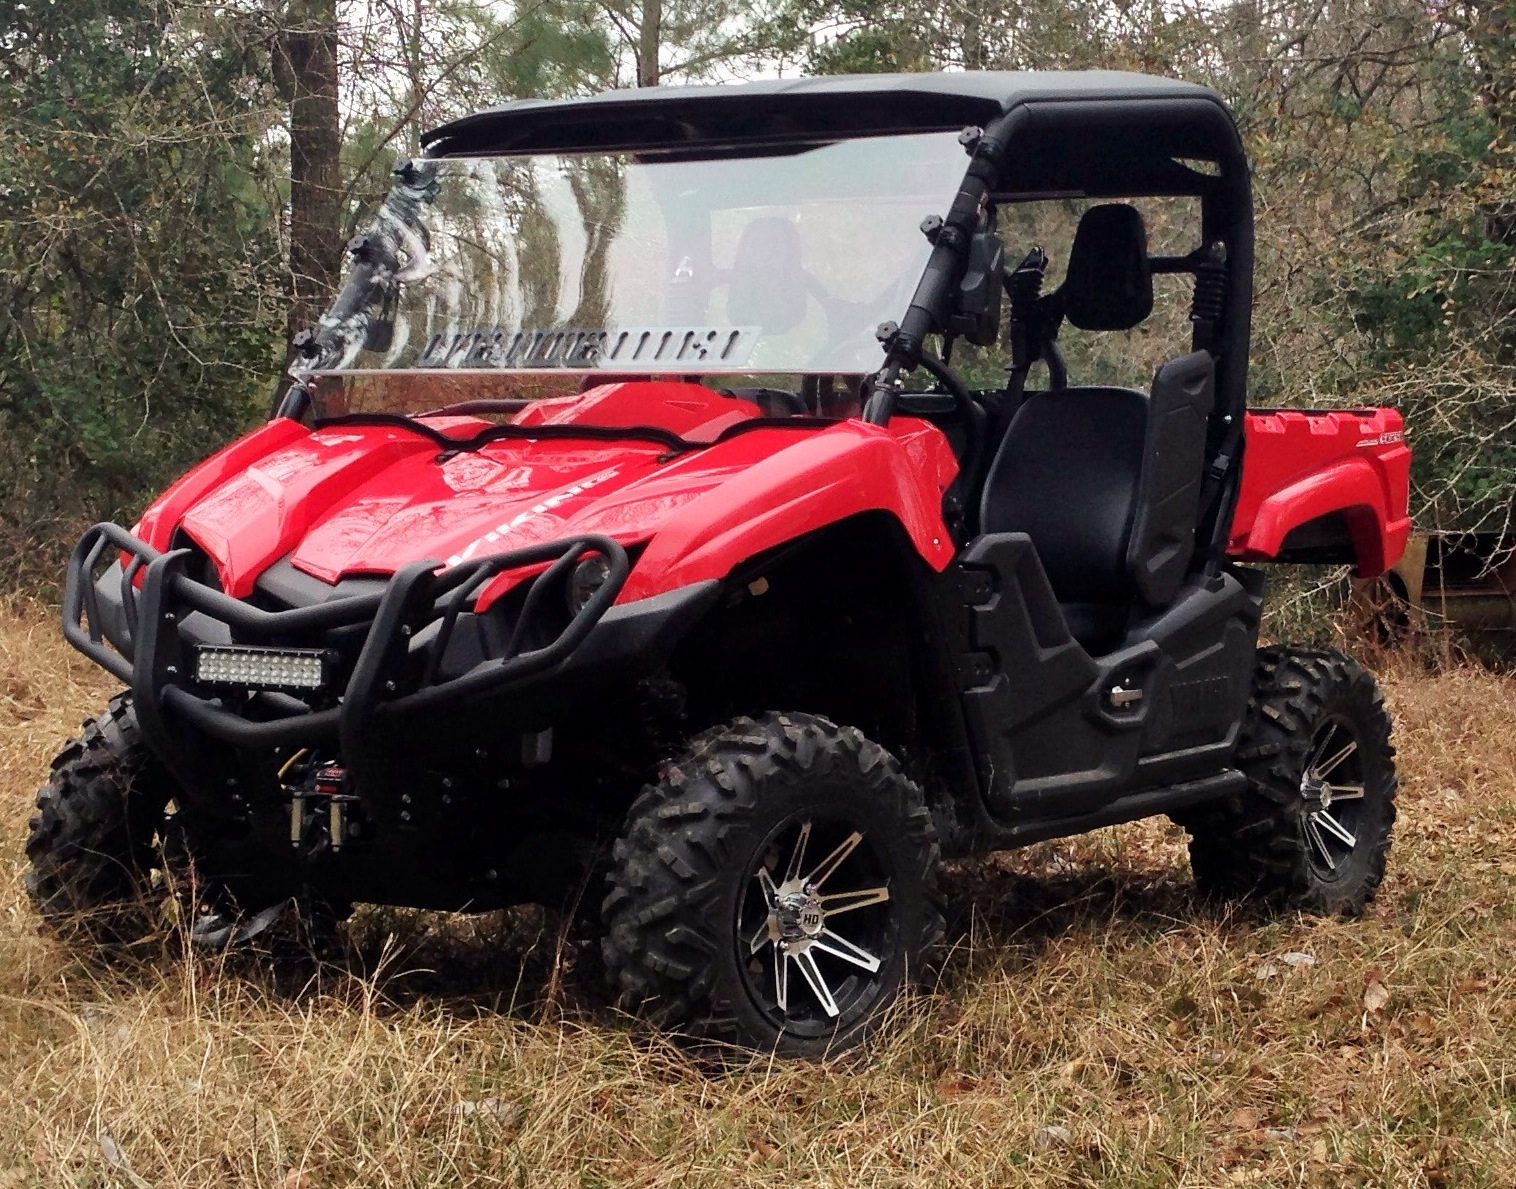 yamaha viking accessories. yamaha launches viking build your own website accessories